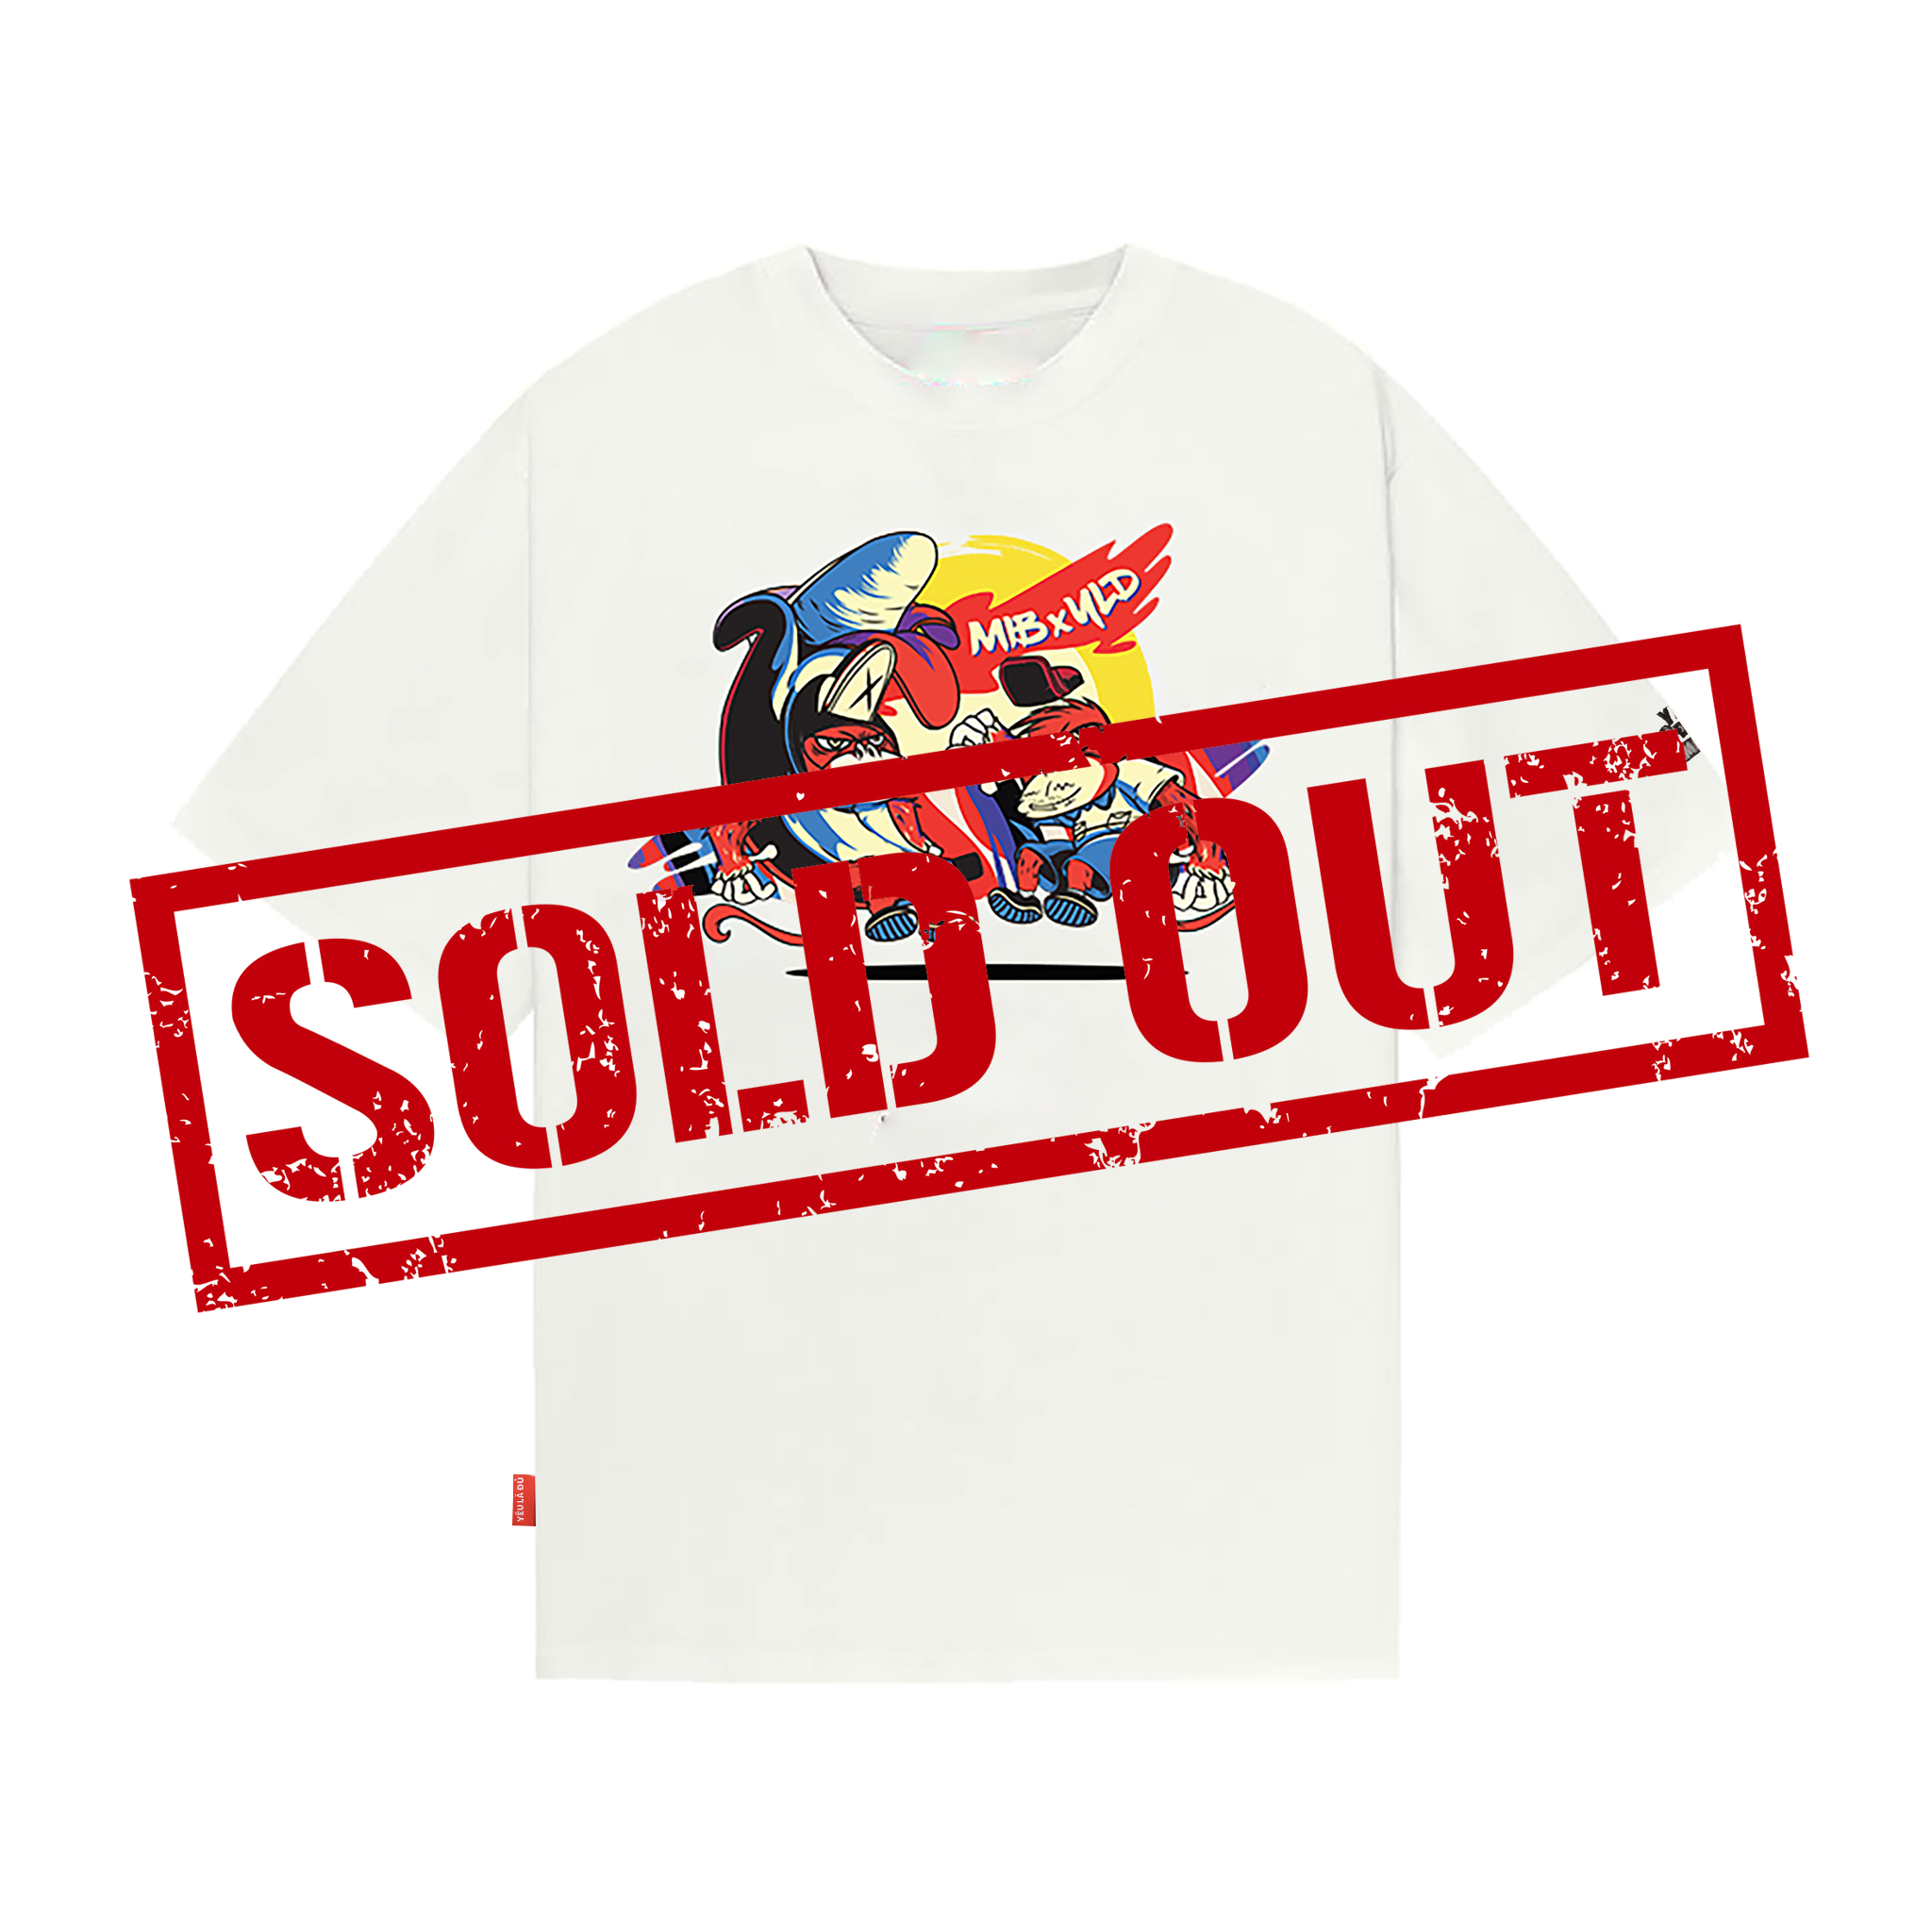 [SOLD OUT] YLD x MIB Collabration